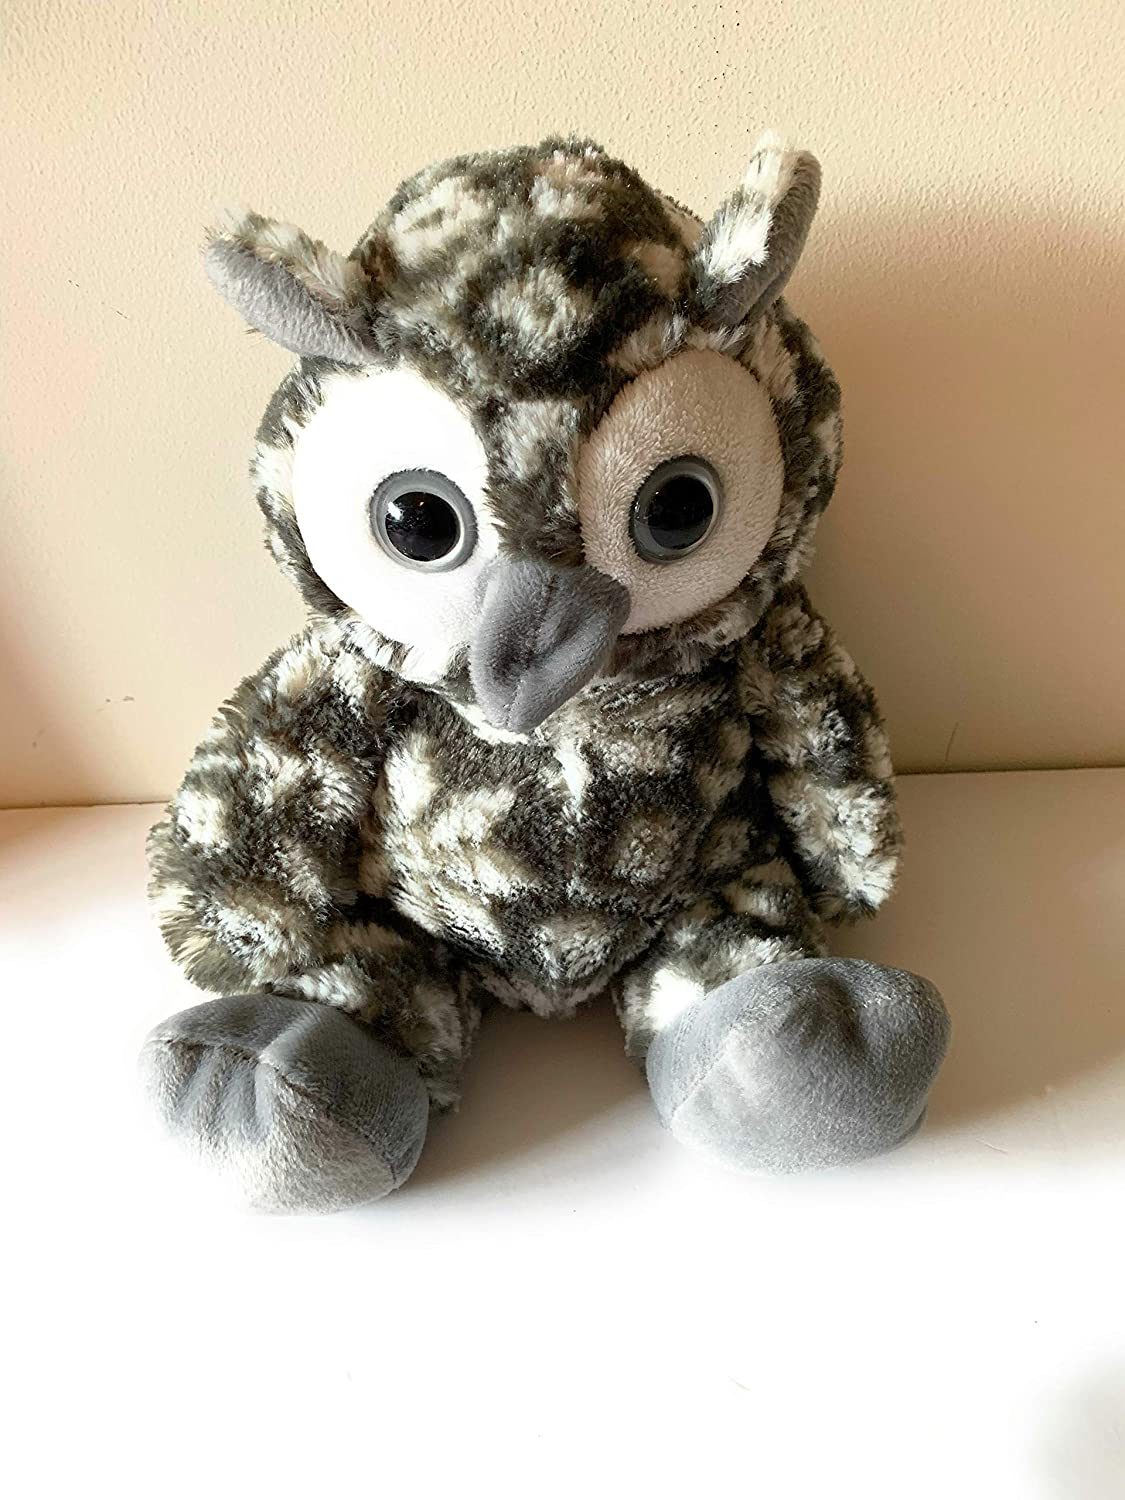 washable weighted buddy sensory sensory toy owl 3 lbs Weighted stuffed animal